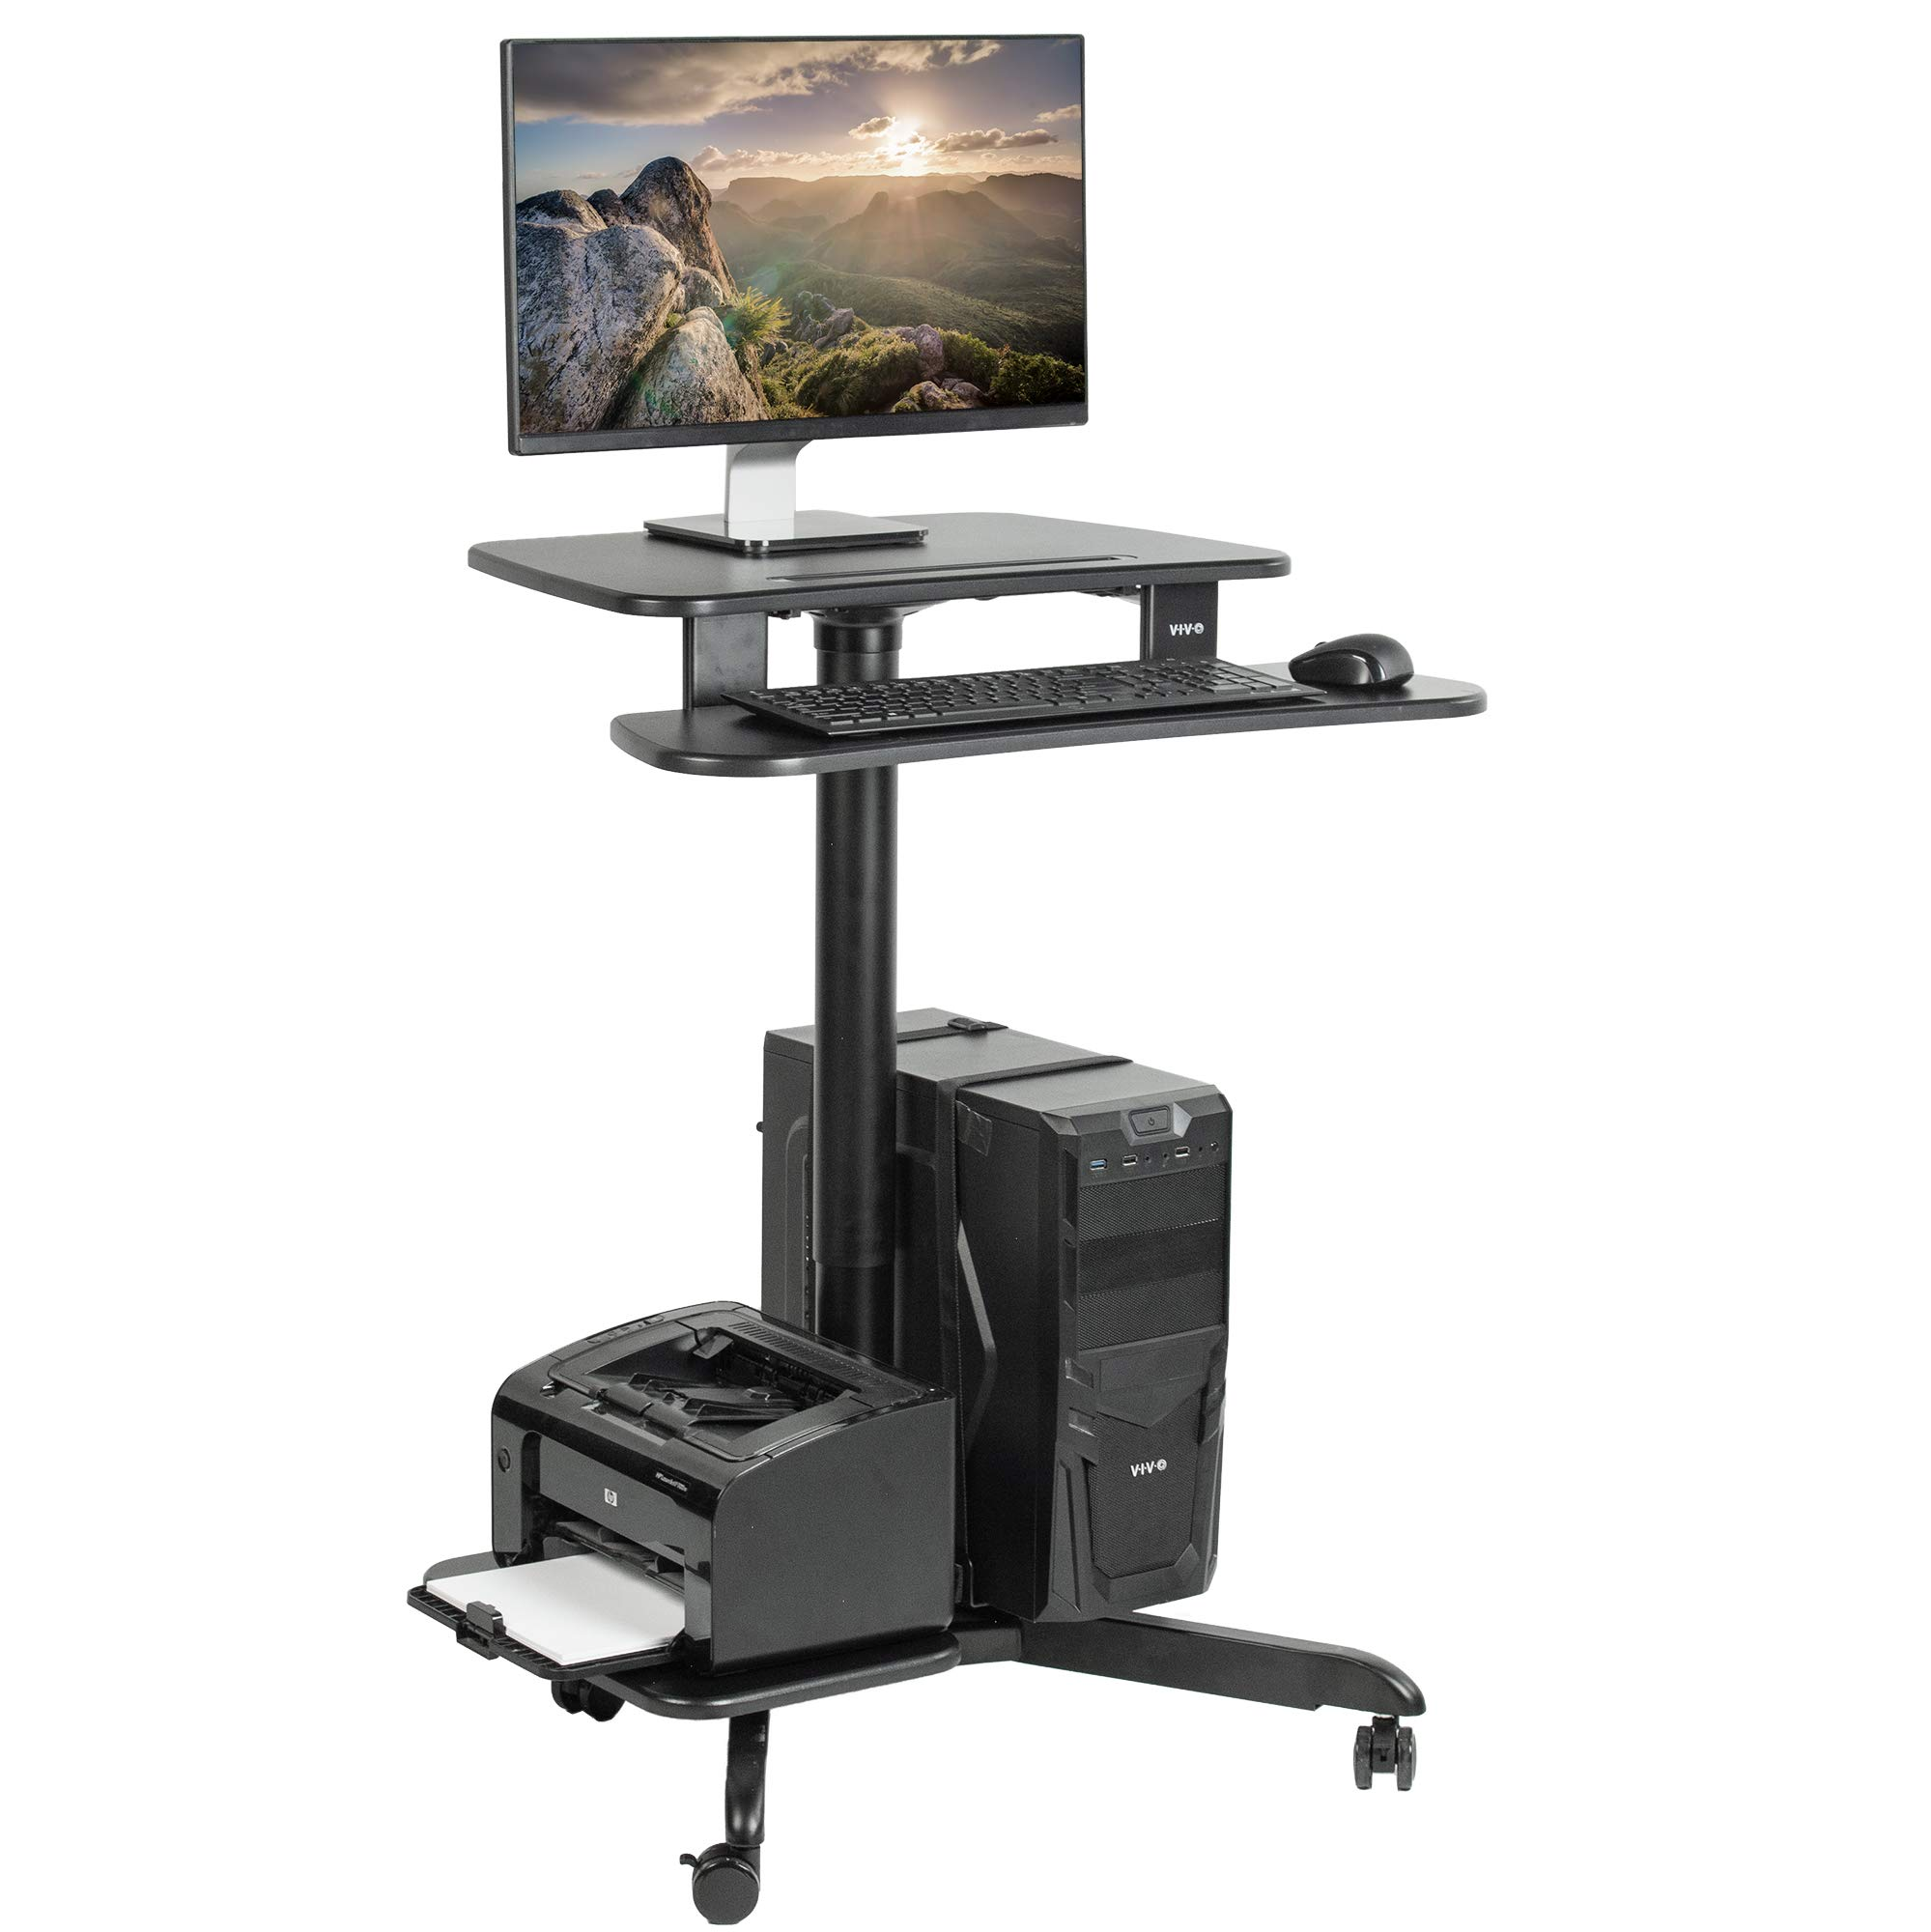 VIVO Black Rolling Dual Tier 24'' Sit to Stand Mobile Computer Workstation with Printer and PC Platform | Pneumatic Spring Height Adjustable Desk Presentation Cart (CART-PC02HB)